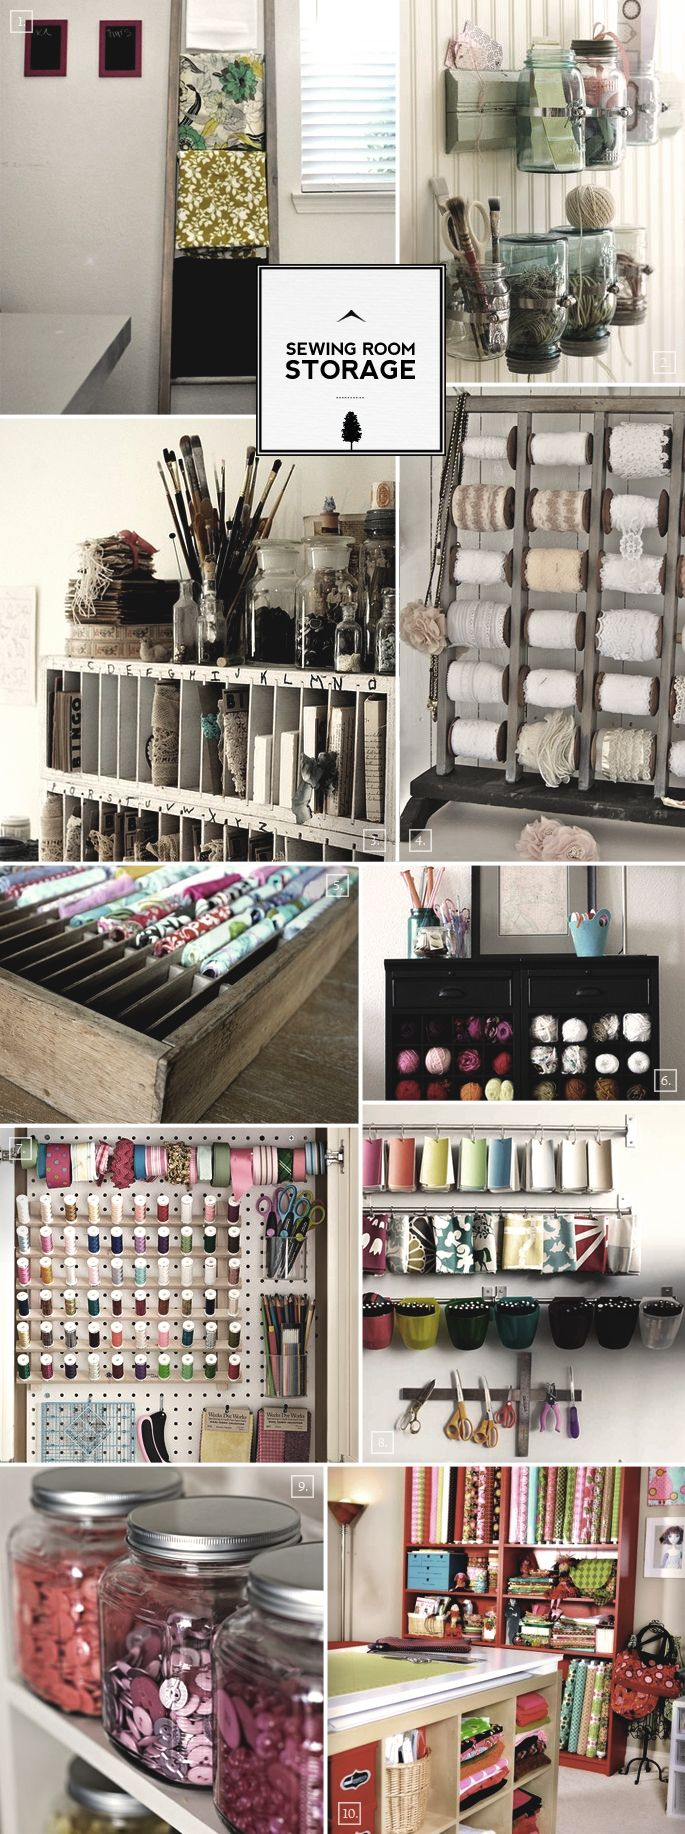 room organization ideas from storage to display tips sewing room